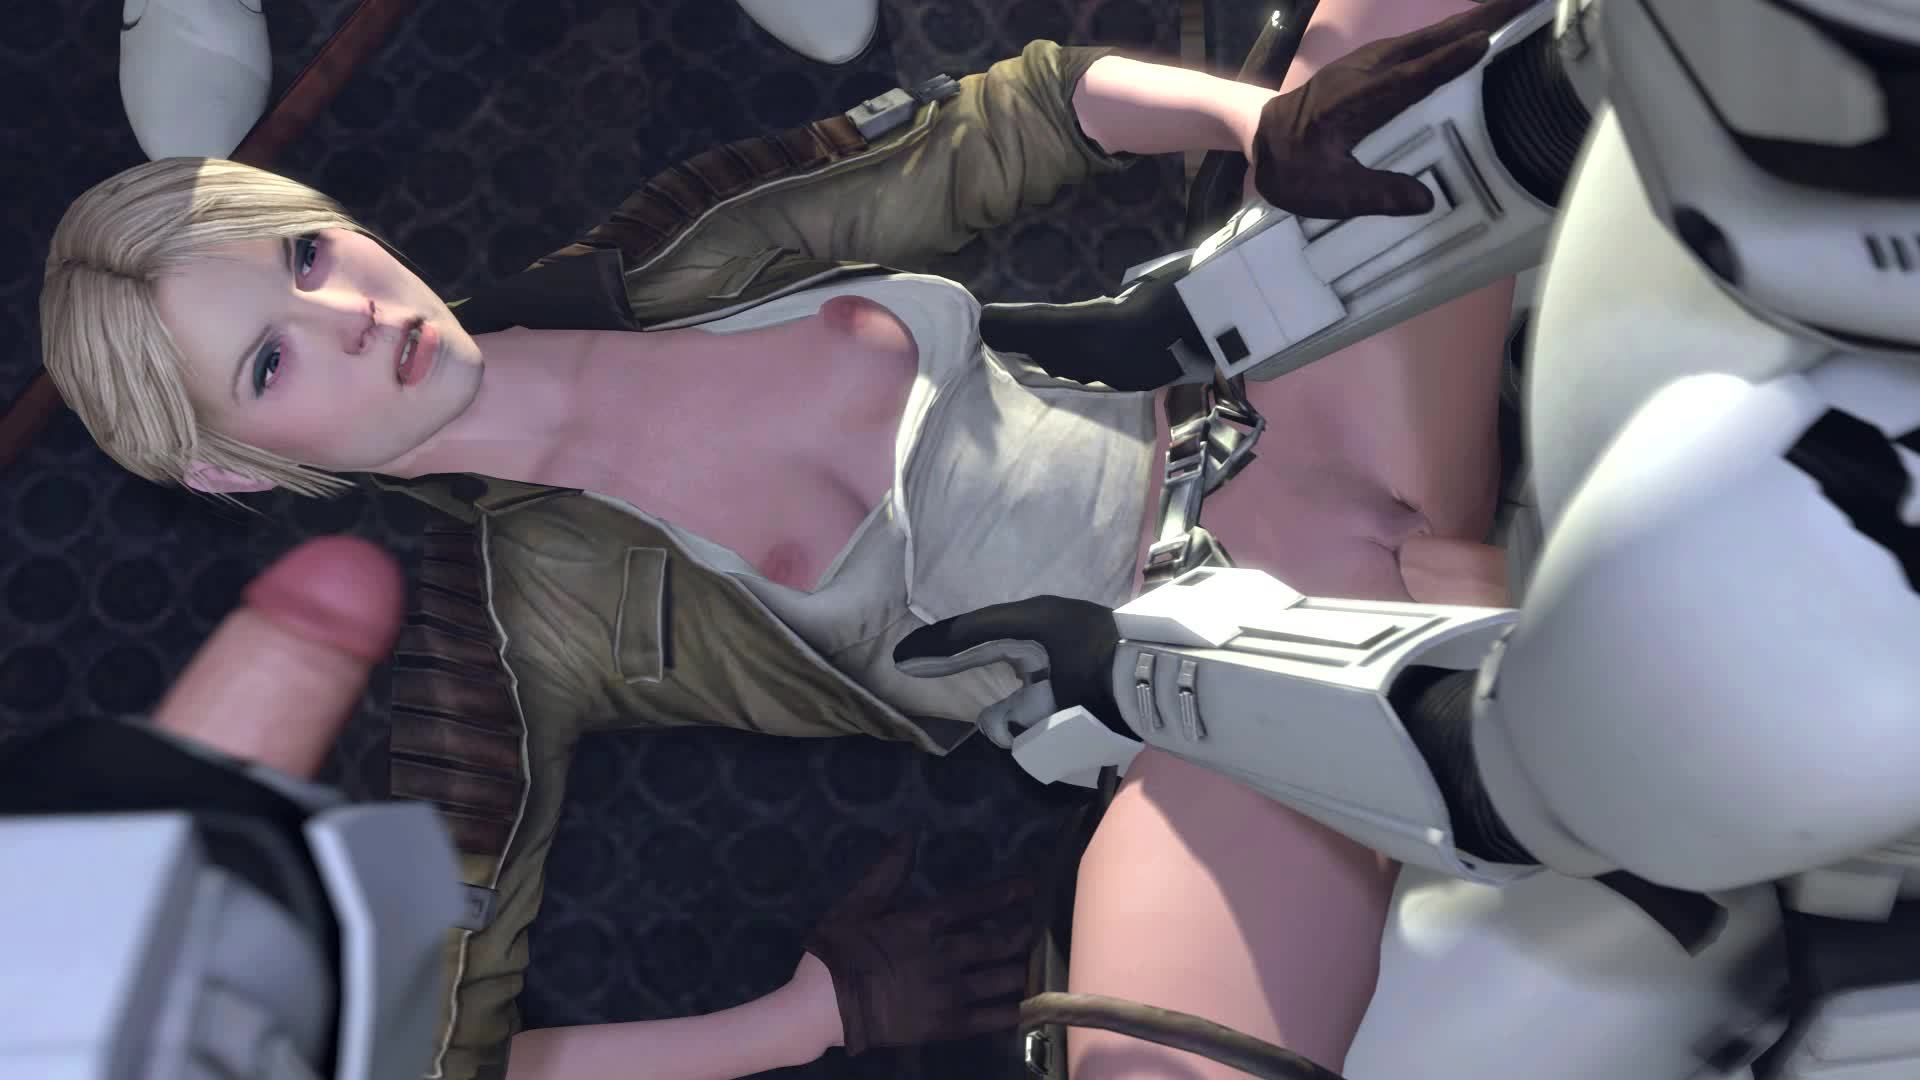 Sexy naked star wars girls animated softcore videos